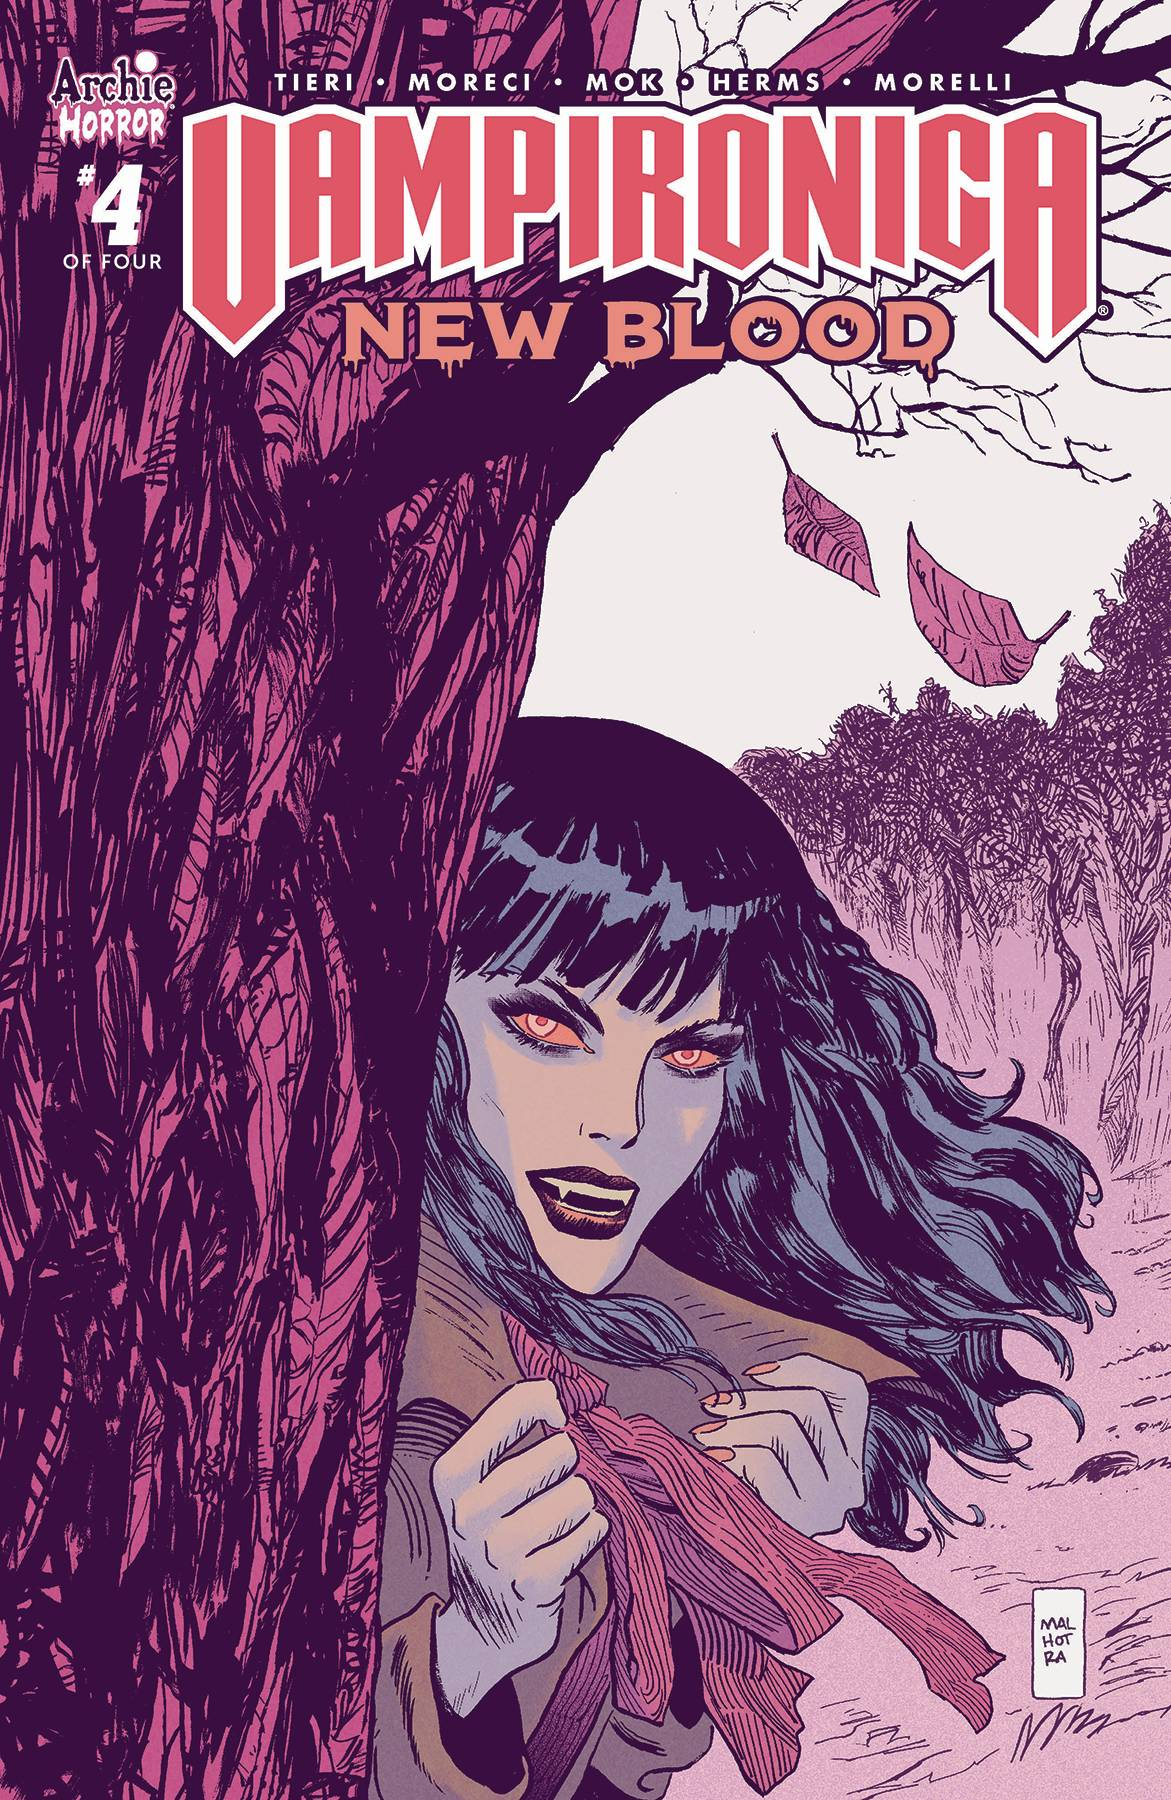 VAMPIRONICA NEW BLOOD #4 (OF 4) CVR B MALHOTRA